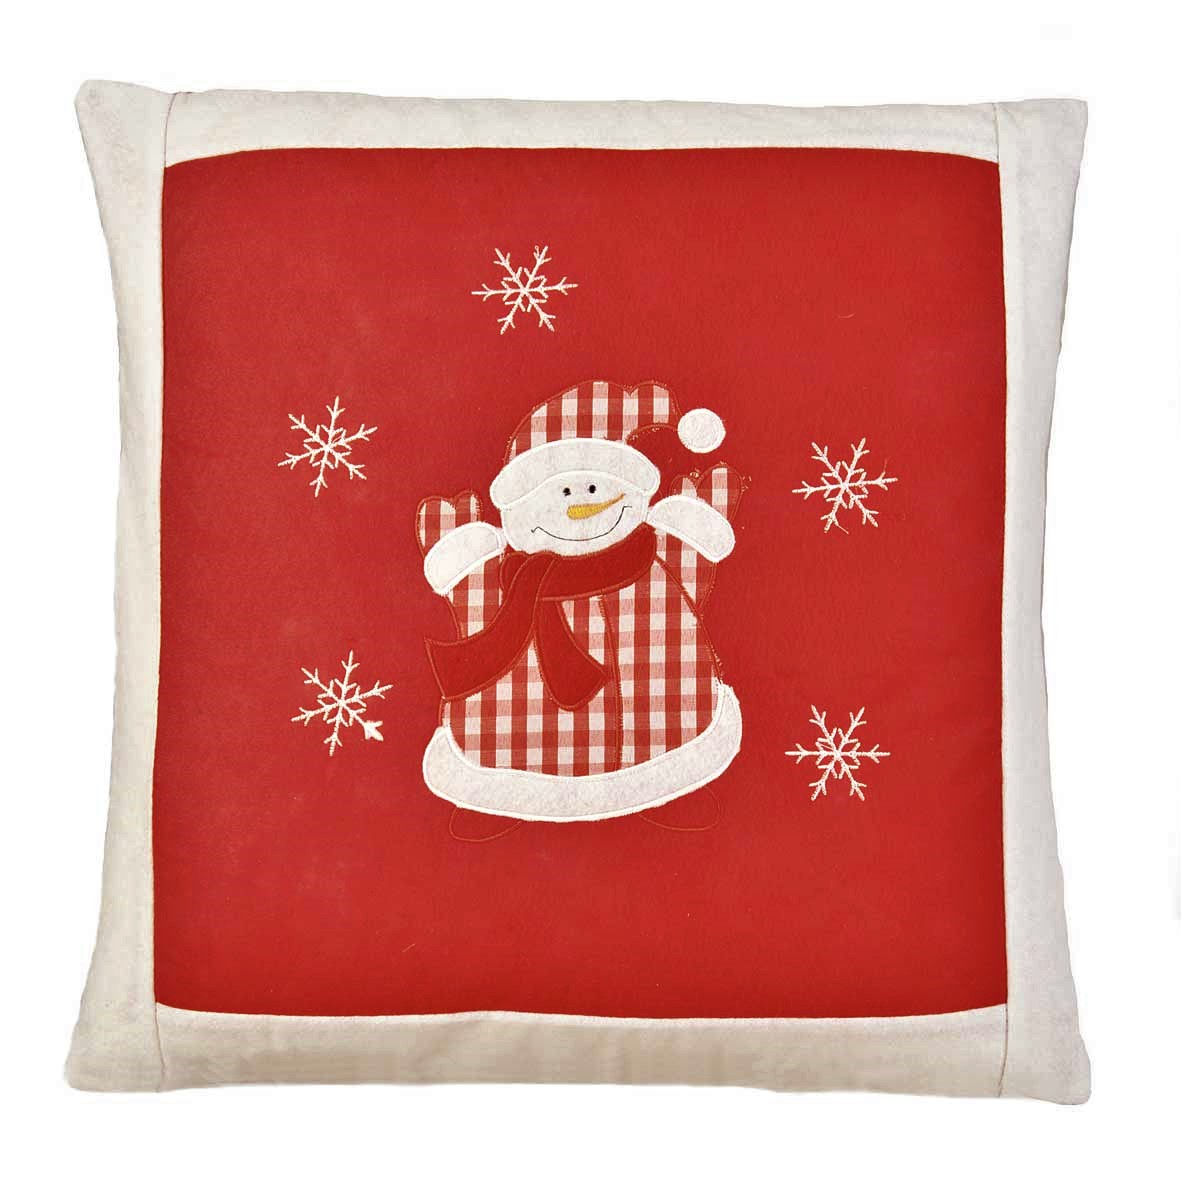 Snowman In Check Embroidered Christmas Cushion Cover Red 42x42cm 16x16 Square